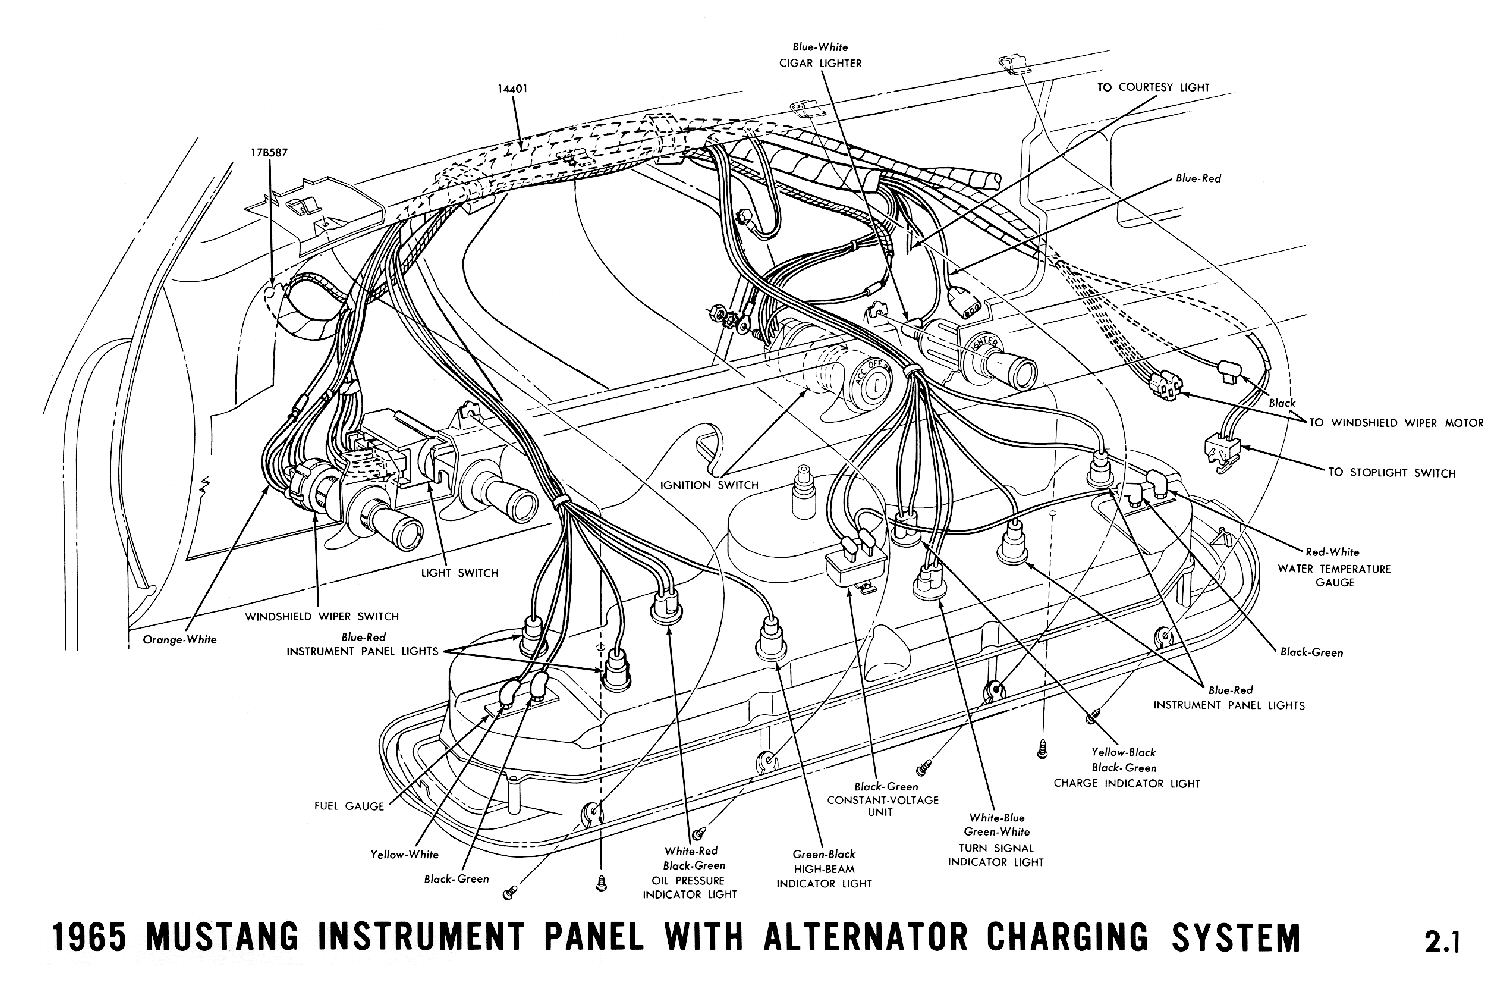 1967 ford mustang cigarette lighter wiring data wiring diagrams 1965 mustang wiring diagrams average joe restoration rh averagejoerestoration com wiring cigarette lighter adapter cigarette lighter plug wiring cheapraybanclubmaster